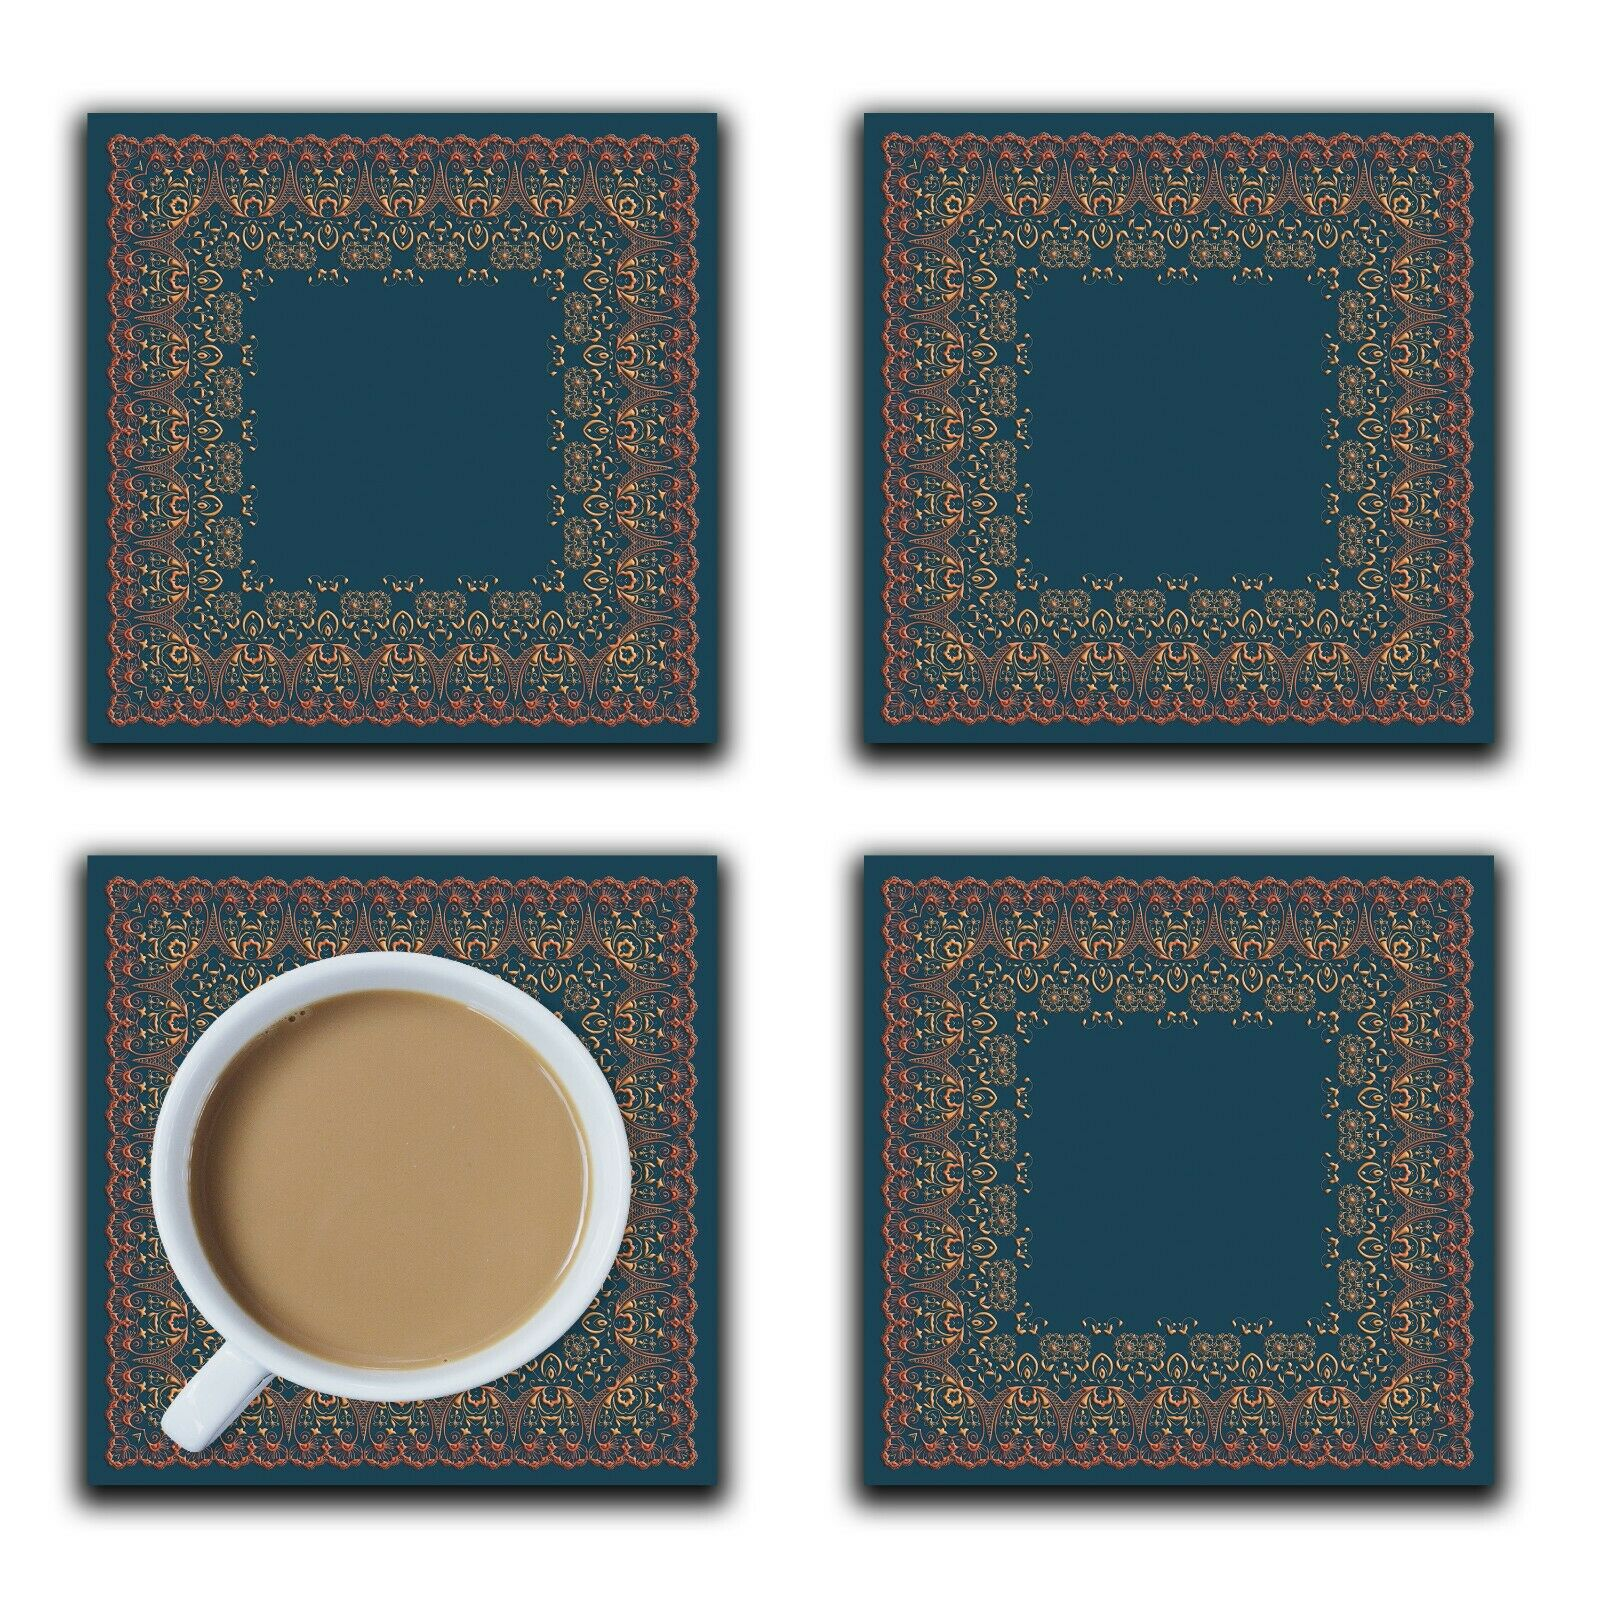 Embossi Printed Flame Lace Frame on Dark Teal, wood or ceramic tile, set of 4